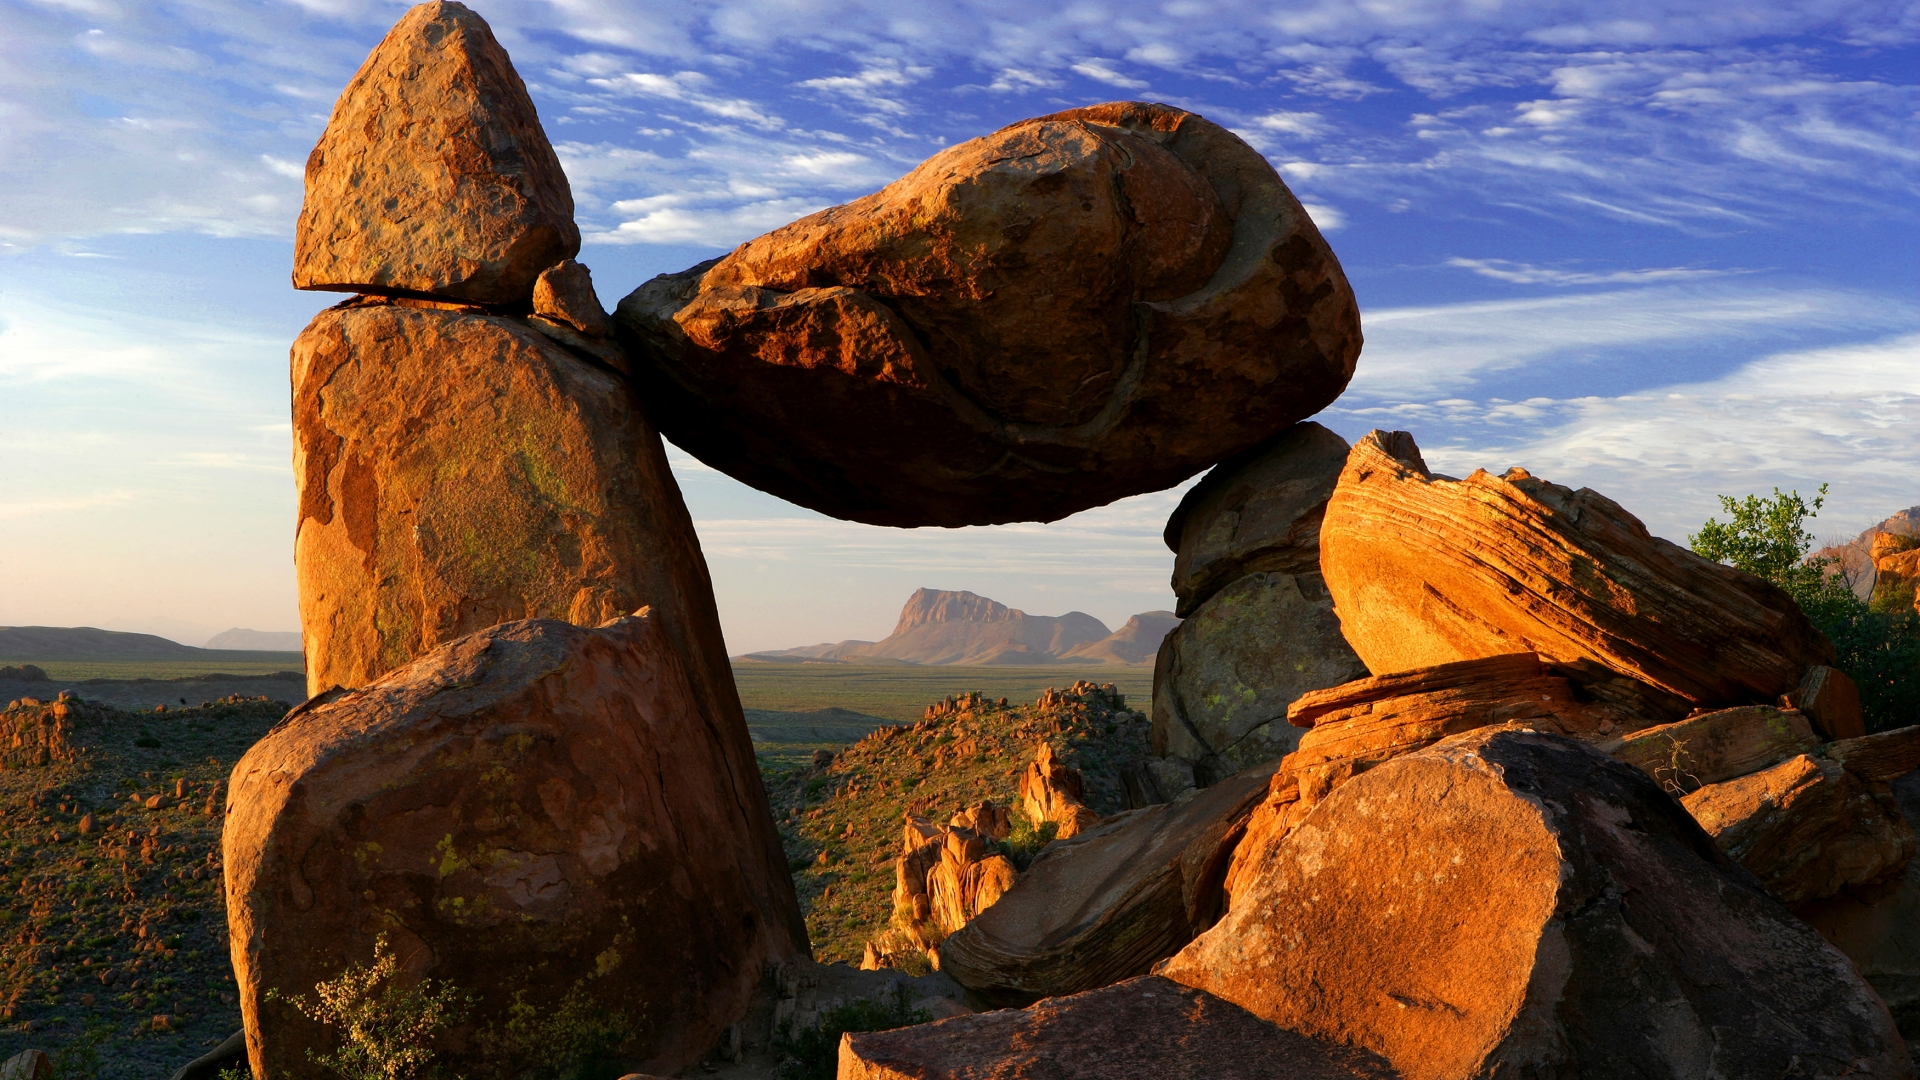 singles in big bend national park Leaving marfa, we journey into big bend national park our first hike is the persimmon gap trail, featuring the oldest exposed rocks in the park we'll then enjoy lunch at the fossil bone exhibit, celebrating 120 million years of paleontological history.